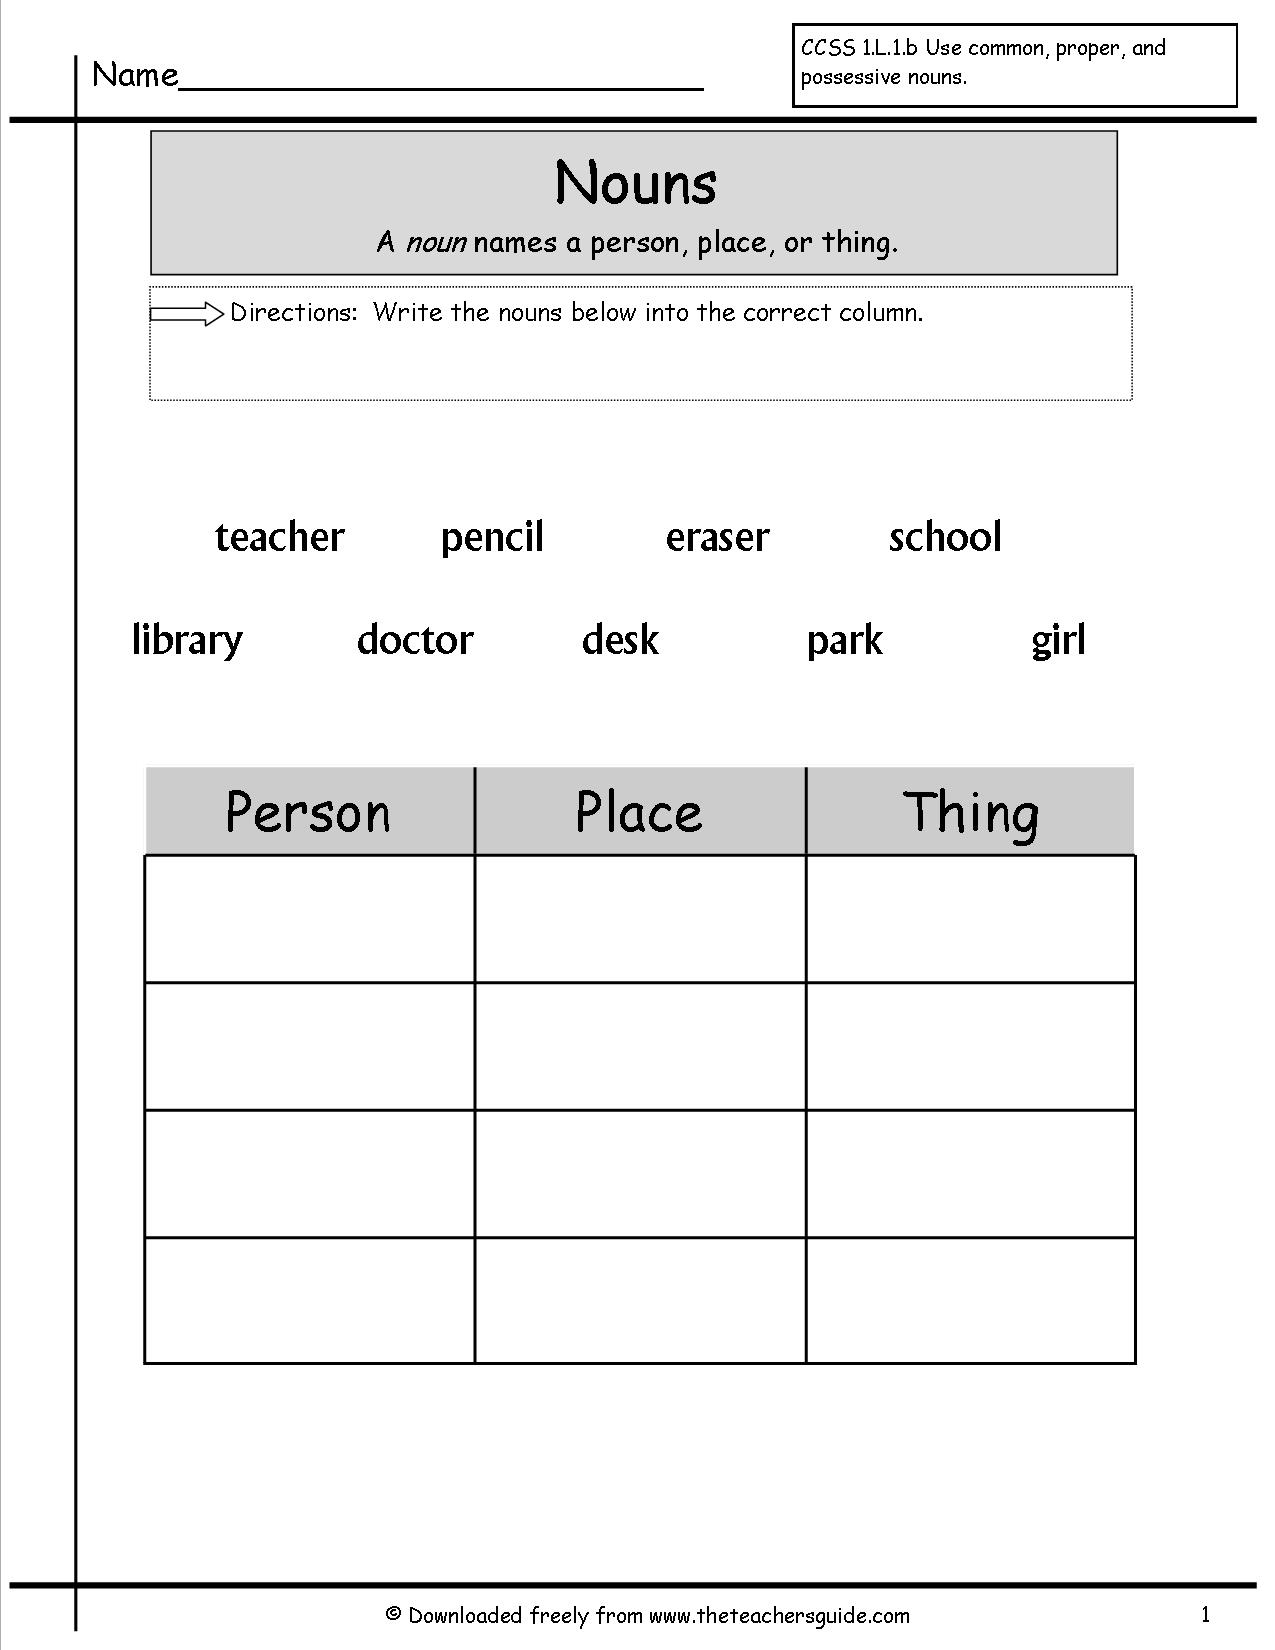 13 Best Images Of 2nd Grade Handwriting Worksheets